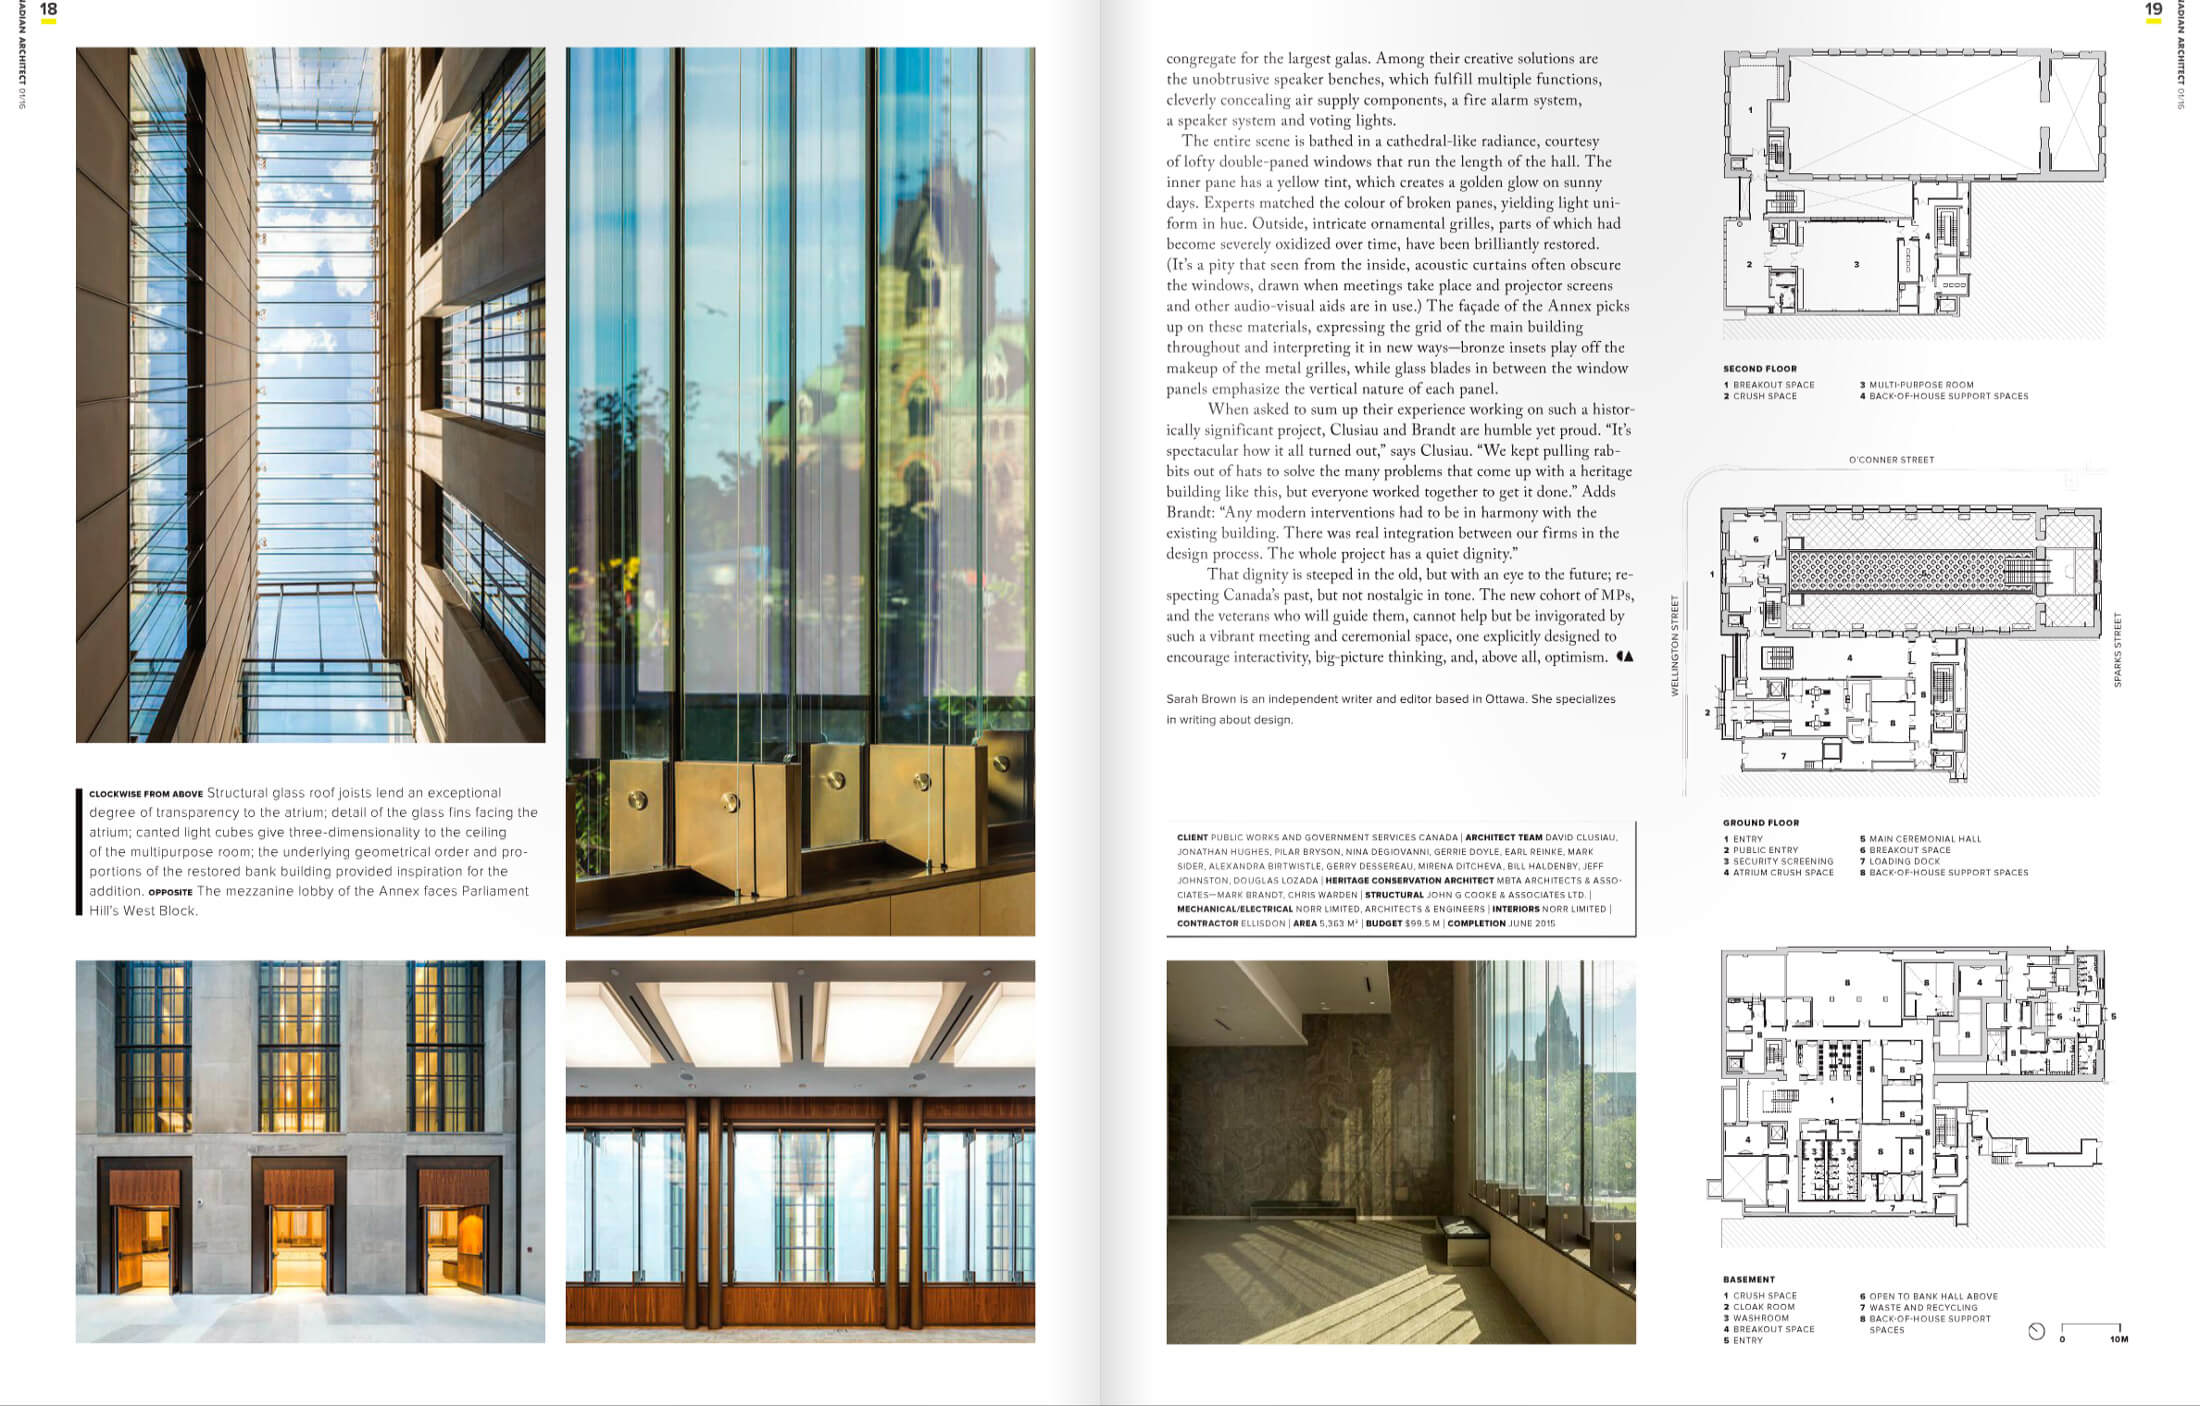 doublespace-canadian-architect-feb-2016-NORR-1